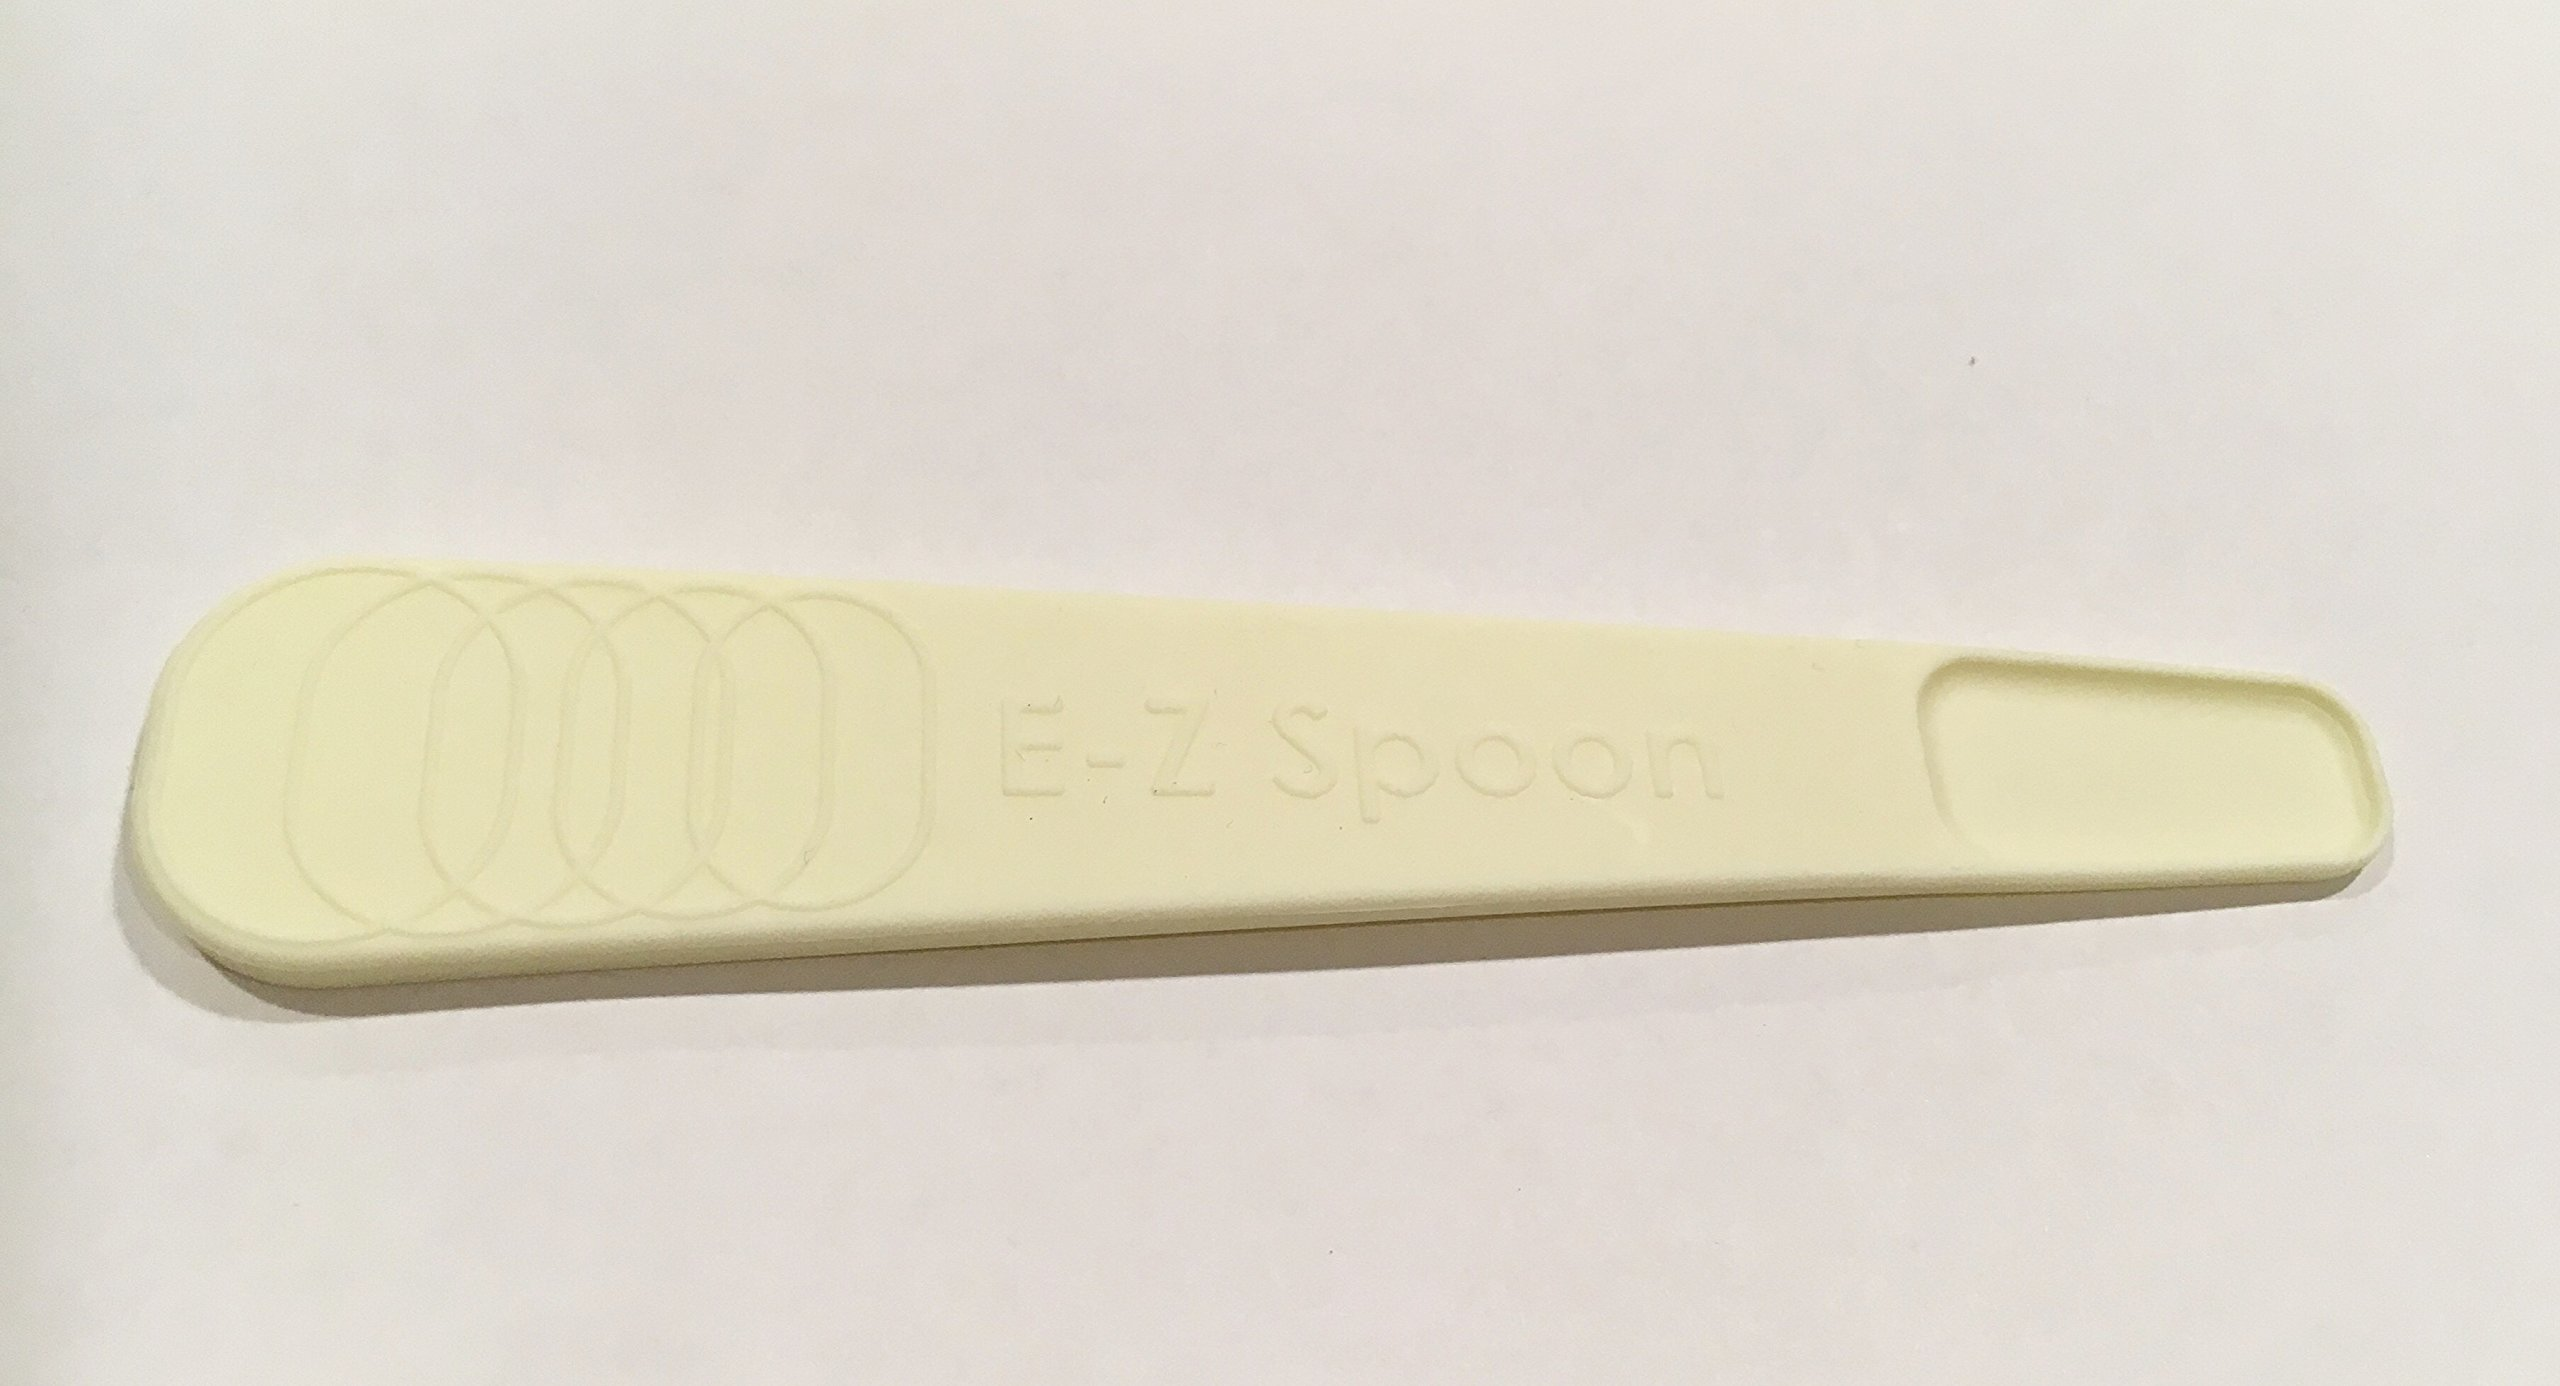 E-Z Spoon soft